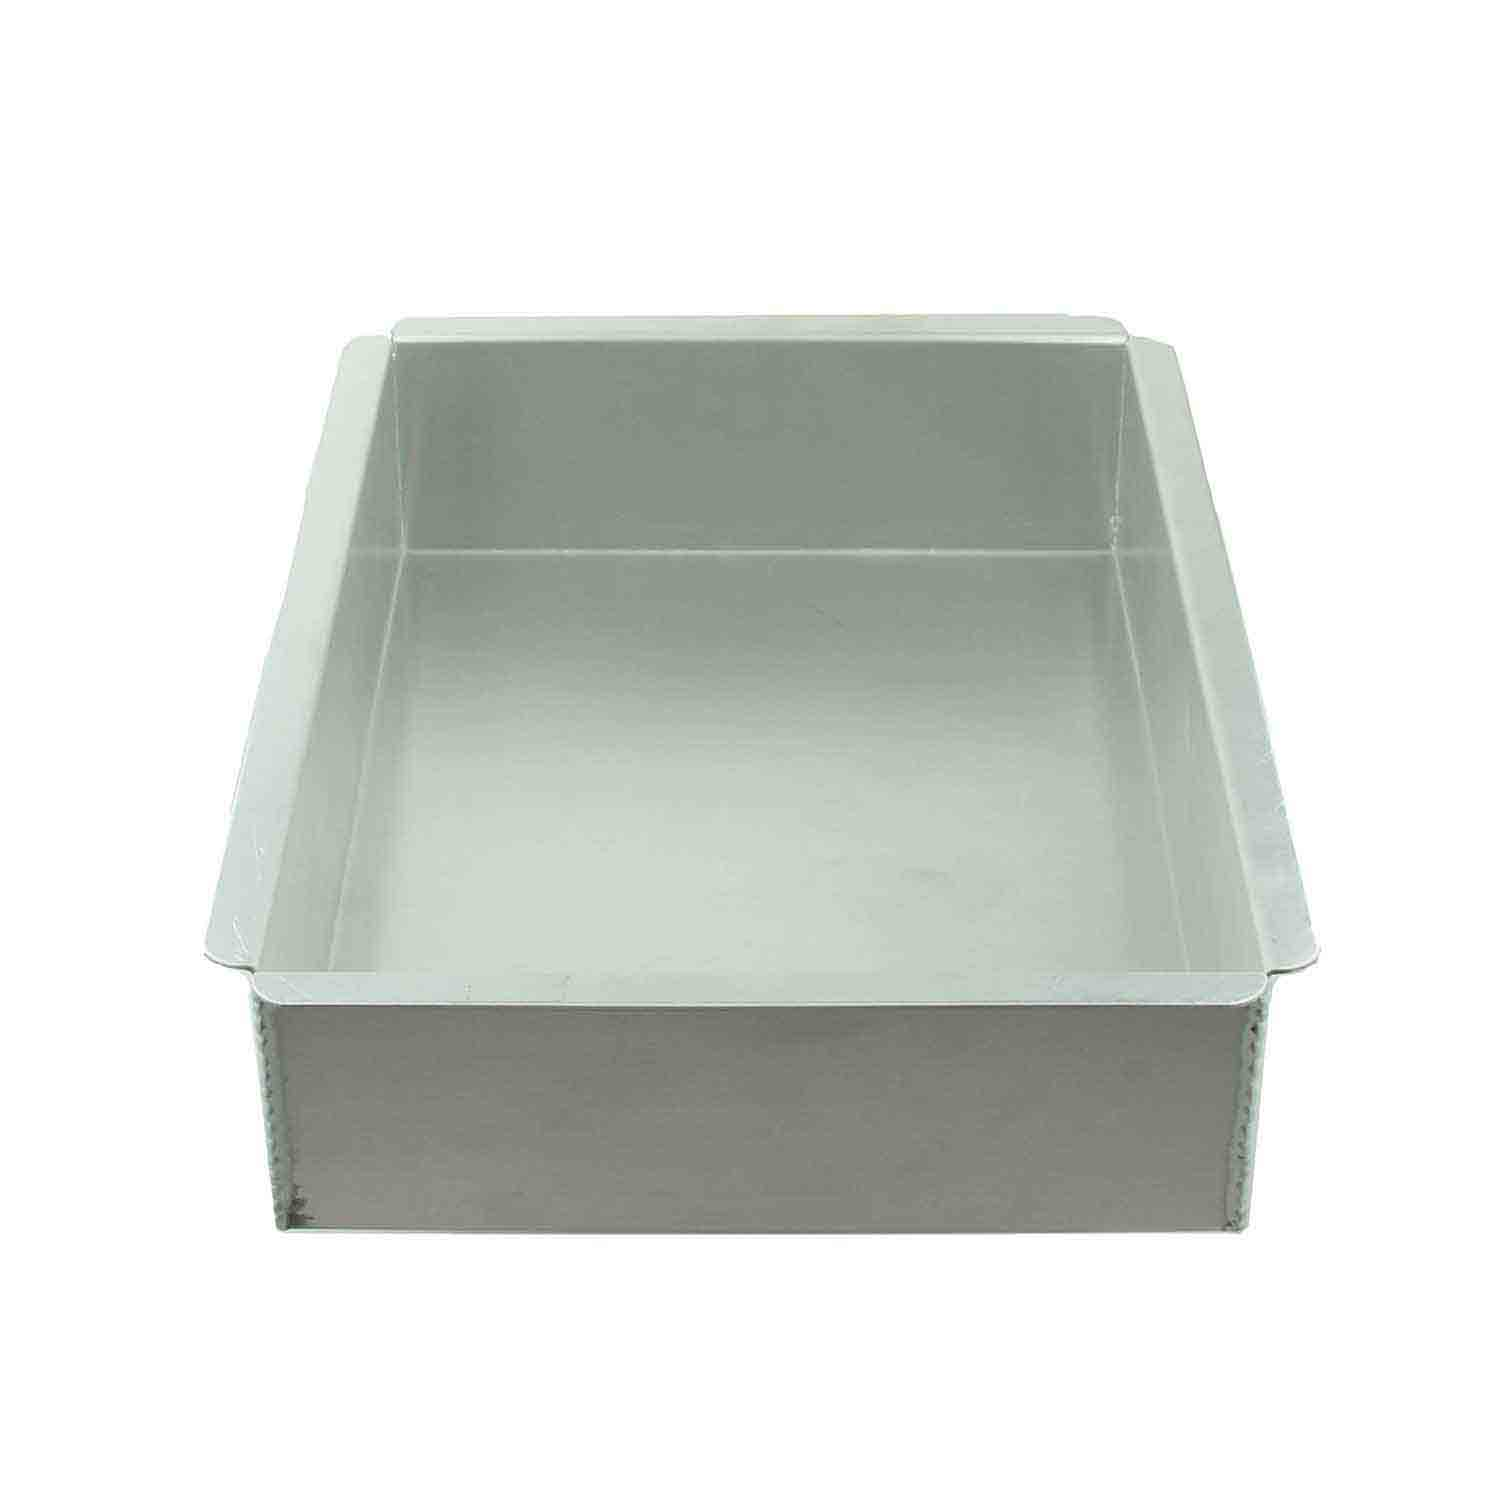 "9 x 13 x 3"" Magic Line Quarter Sheet Cake Pan"